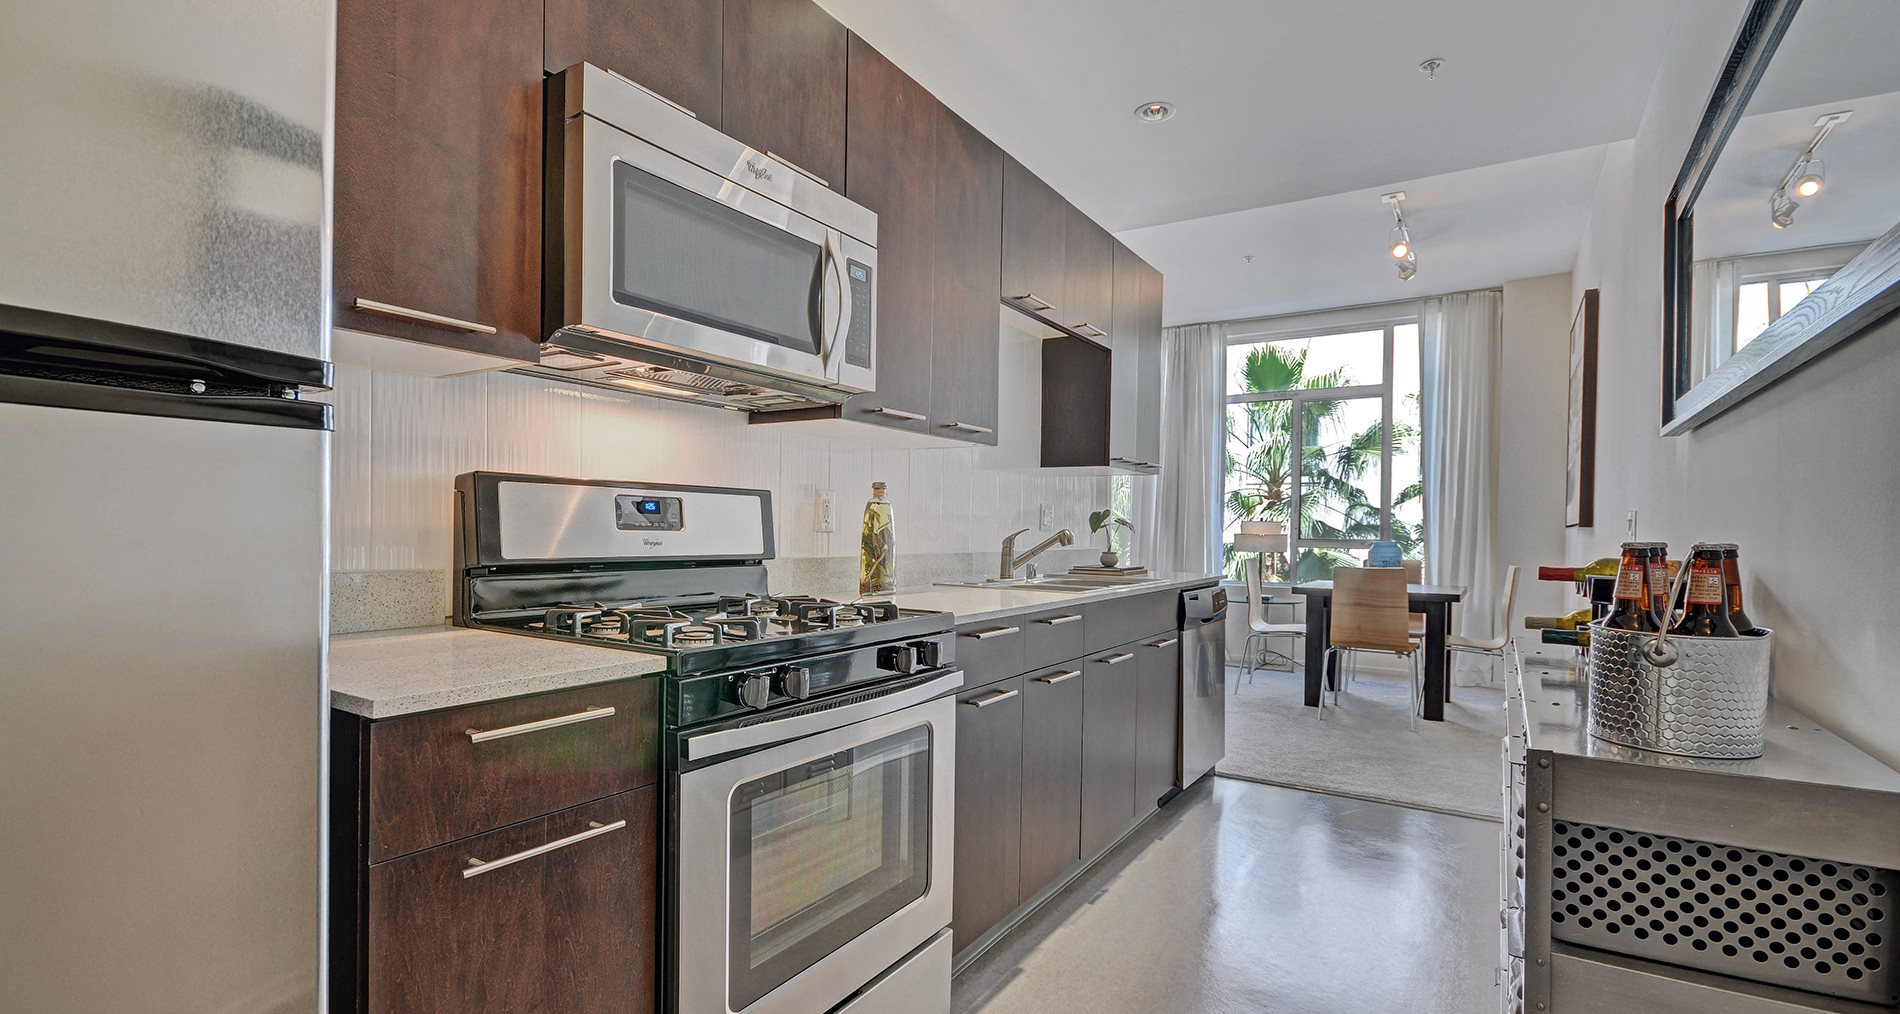 Cheap Furnished Studio Apartments Los Angeles Apartment Fully Furnished Apt In La Downtown Los